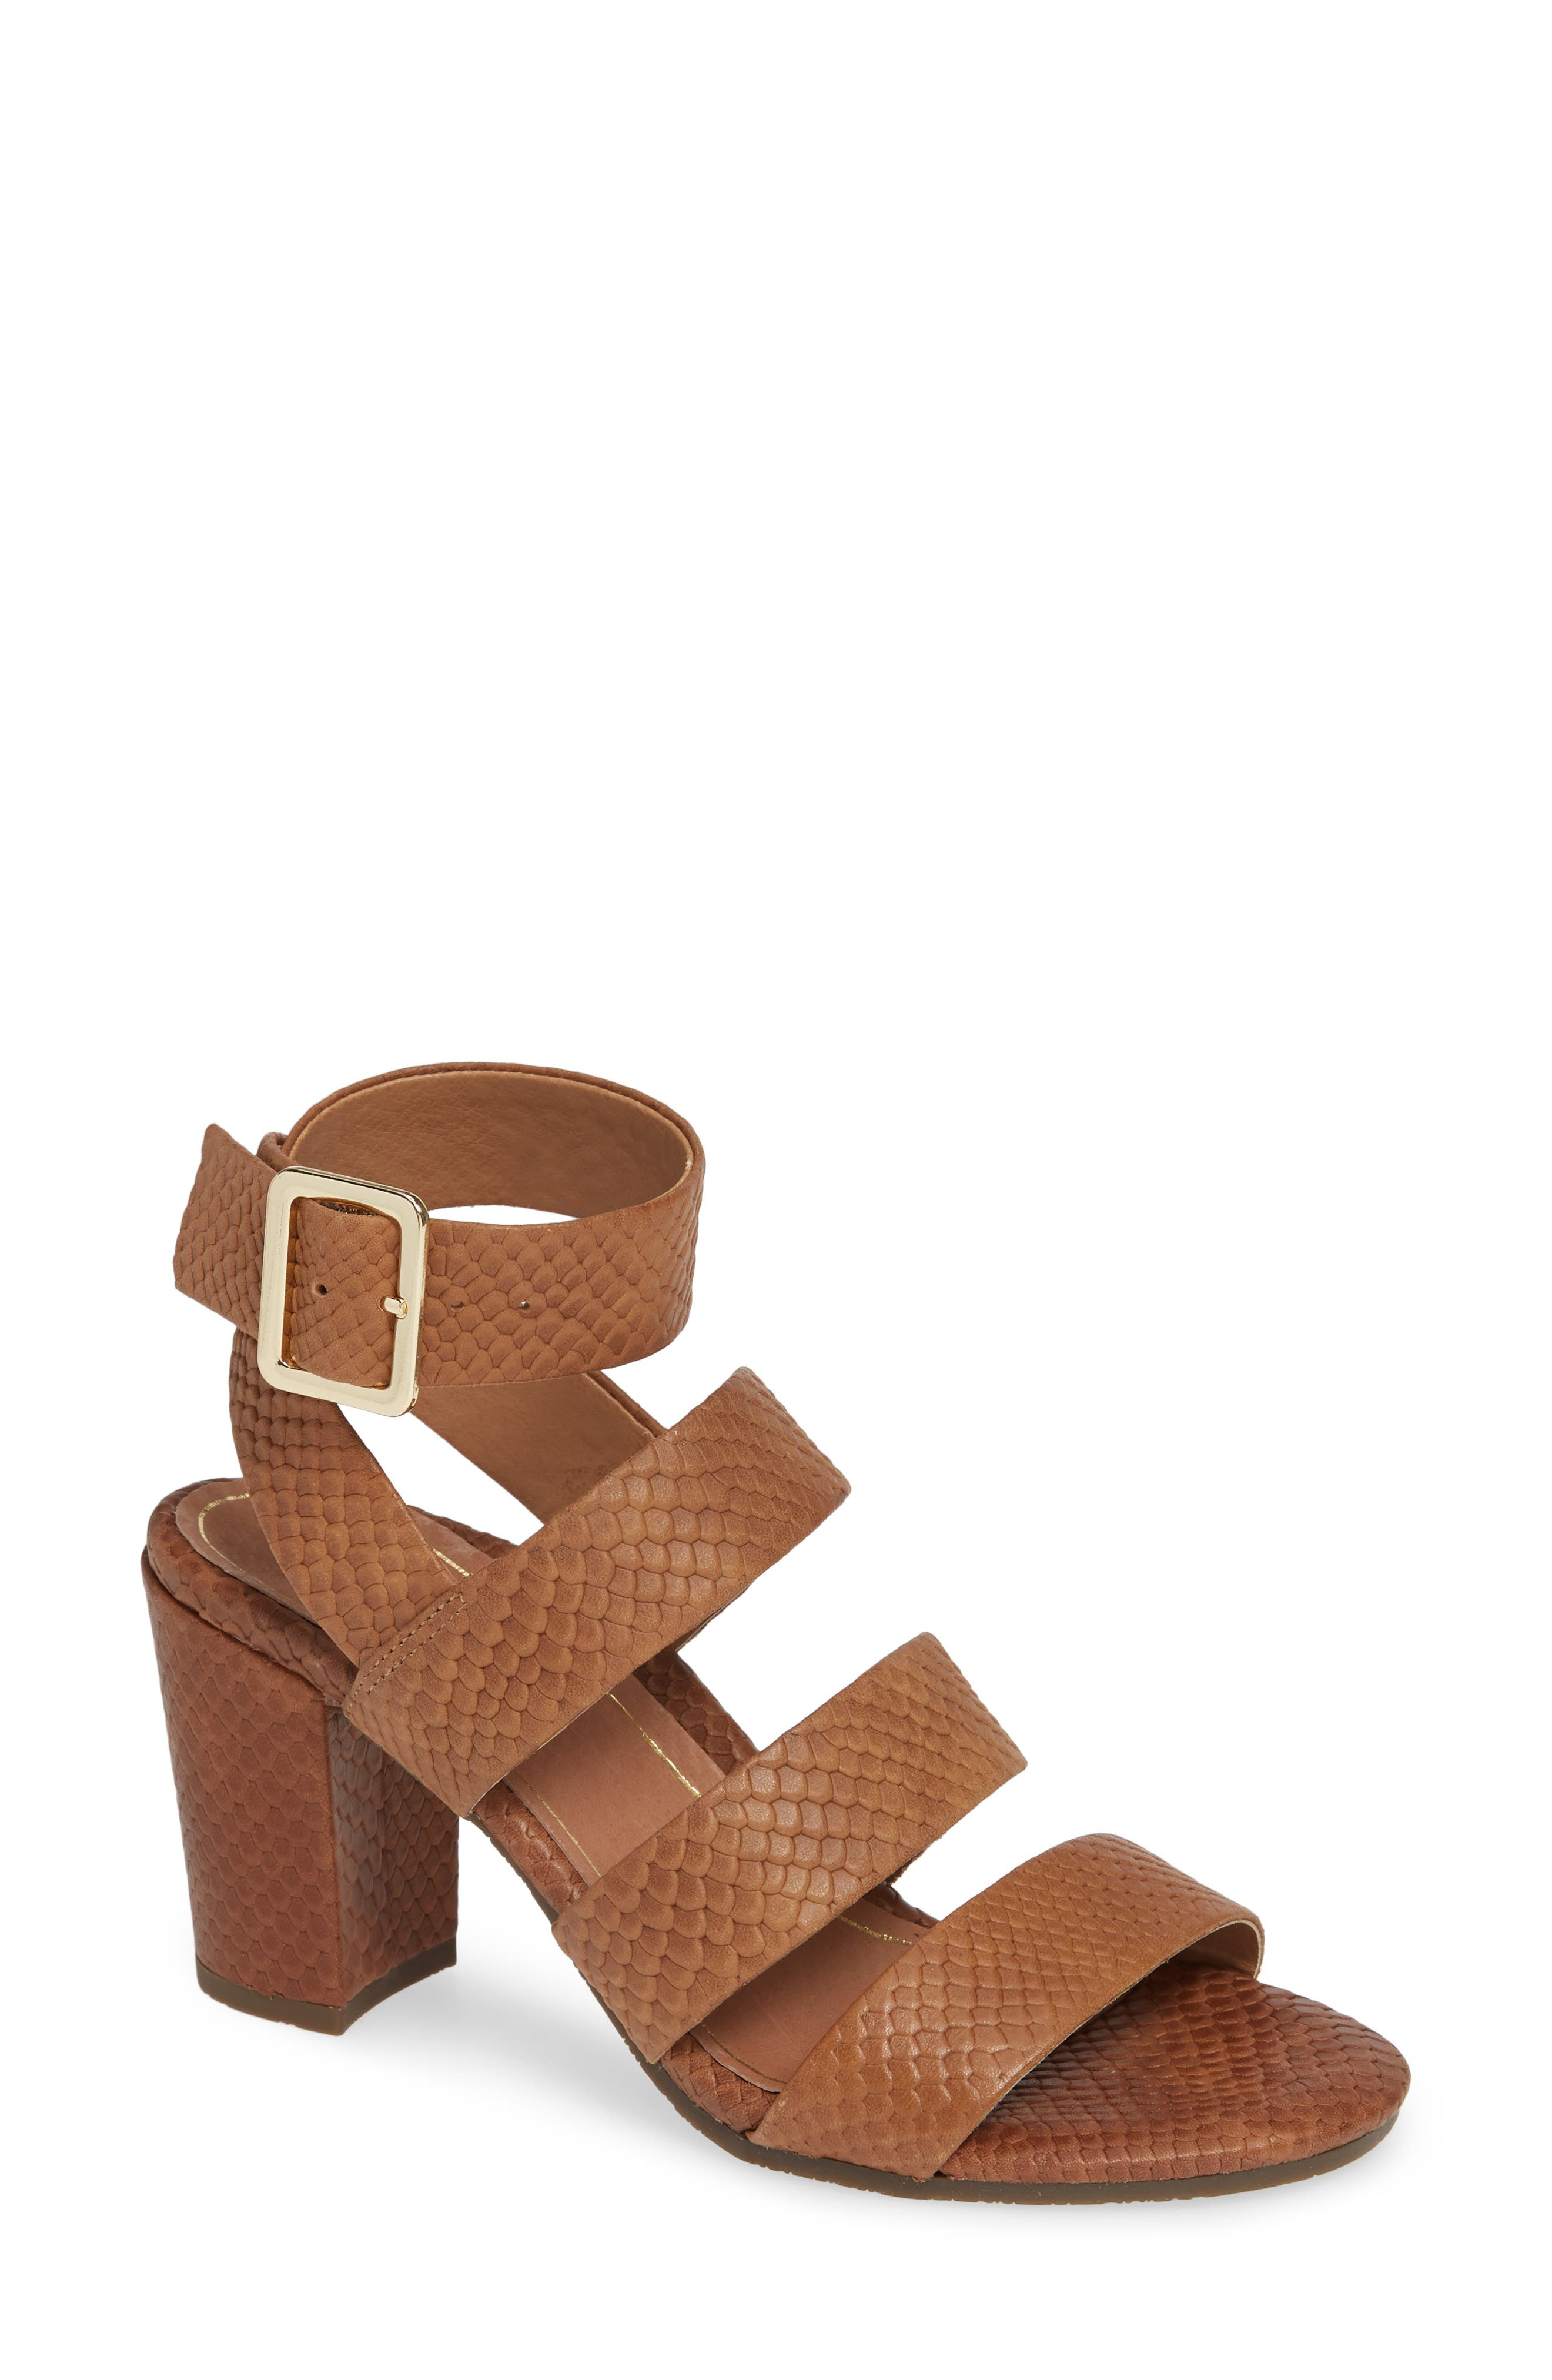 Blaire Block Heel Sandal,                         Main,                         color, BROWN SNAKE EMBOSSED LEATHER